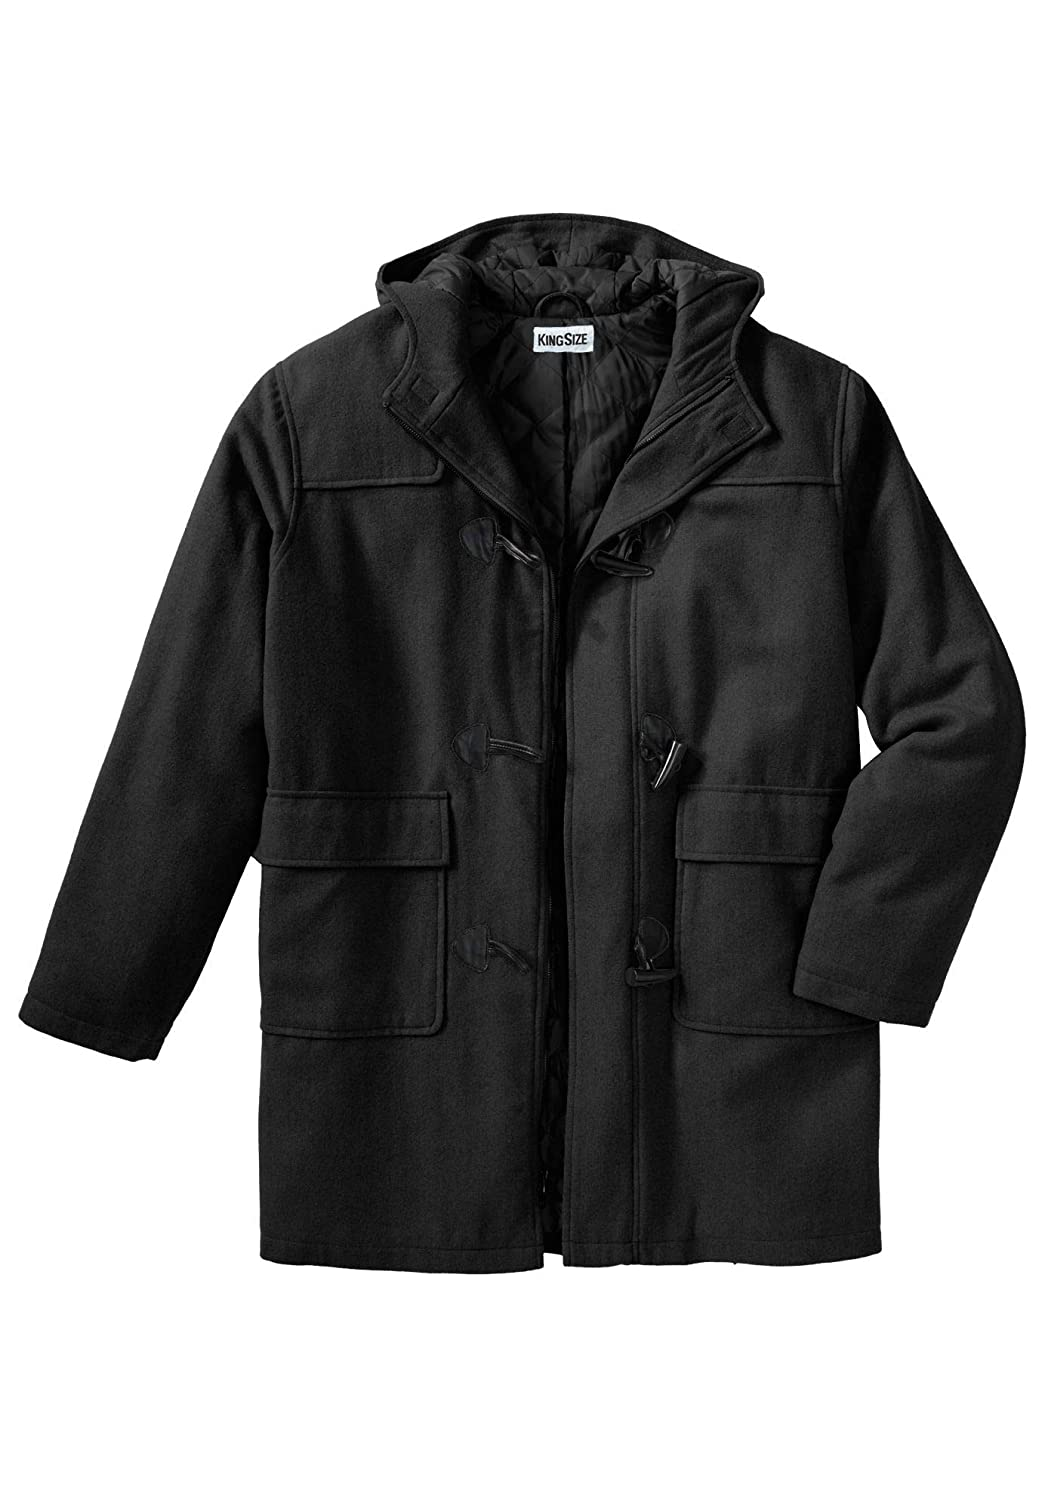 KingSize Men's Big & Tall Toggle Parka Coat